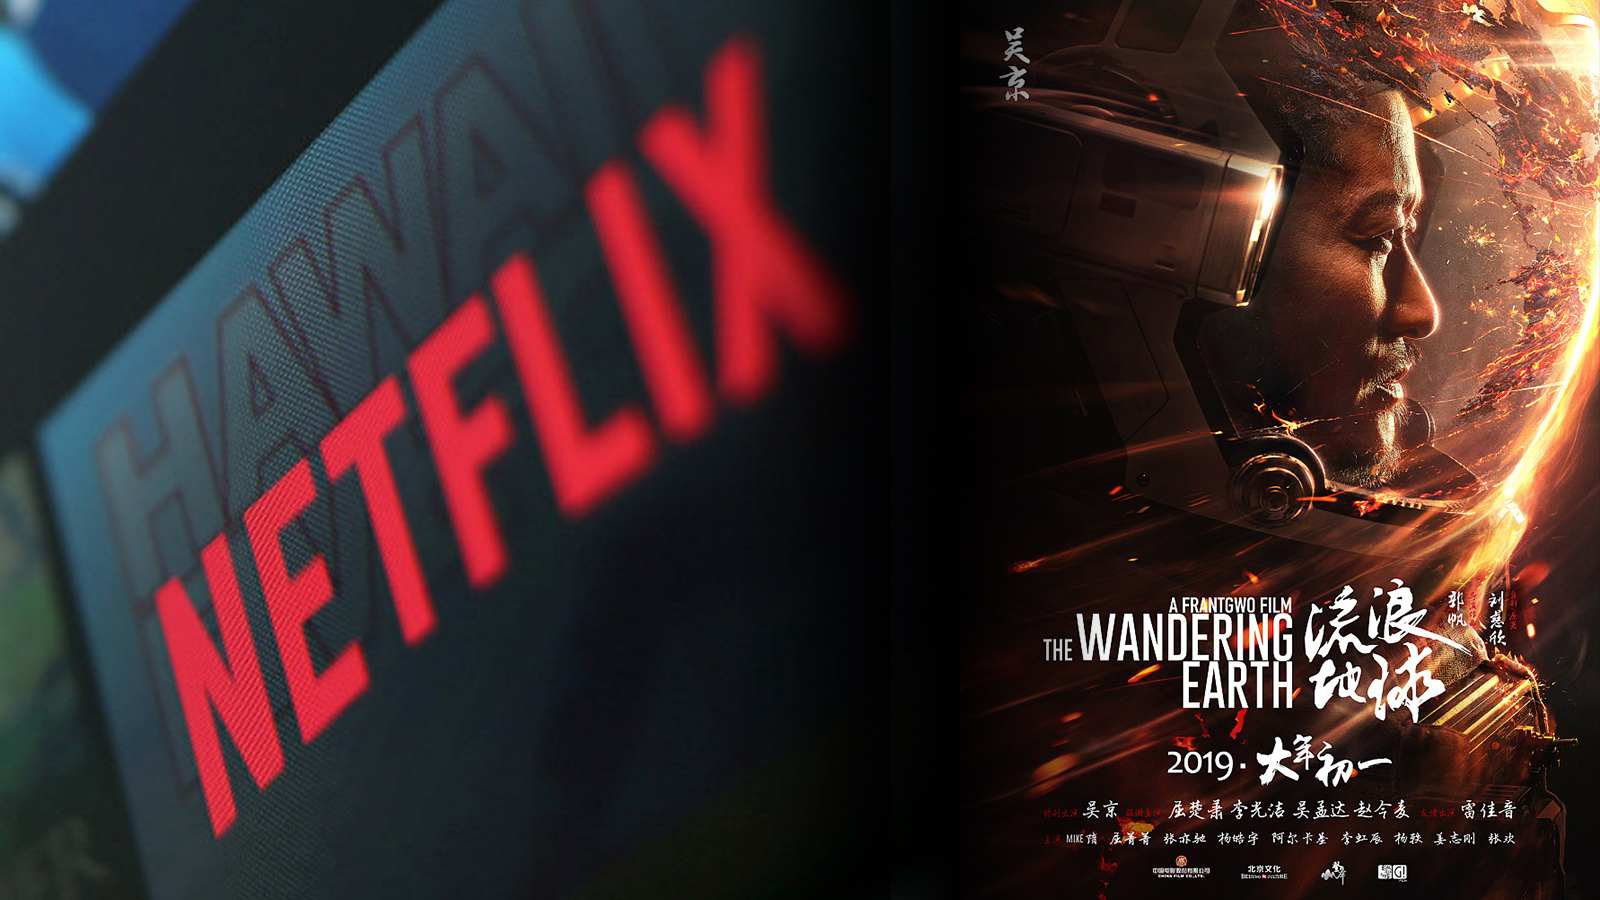 Chinese sci-innovation to be featured at Toronto film festival